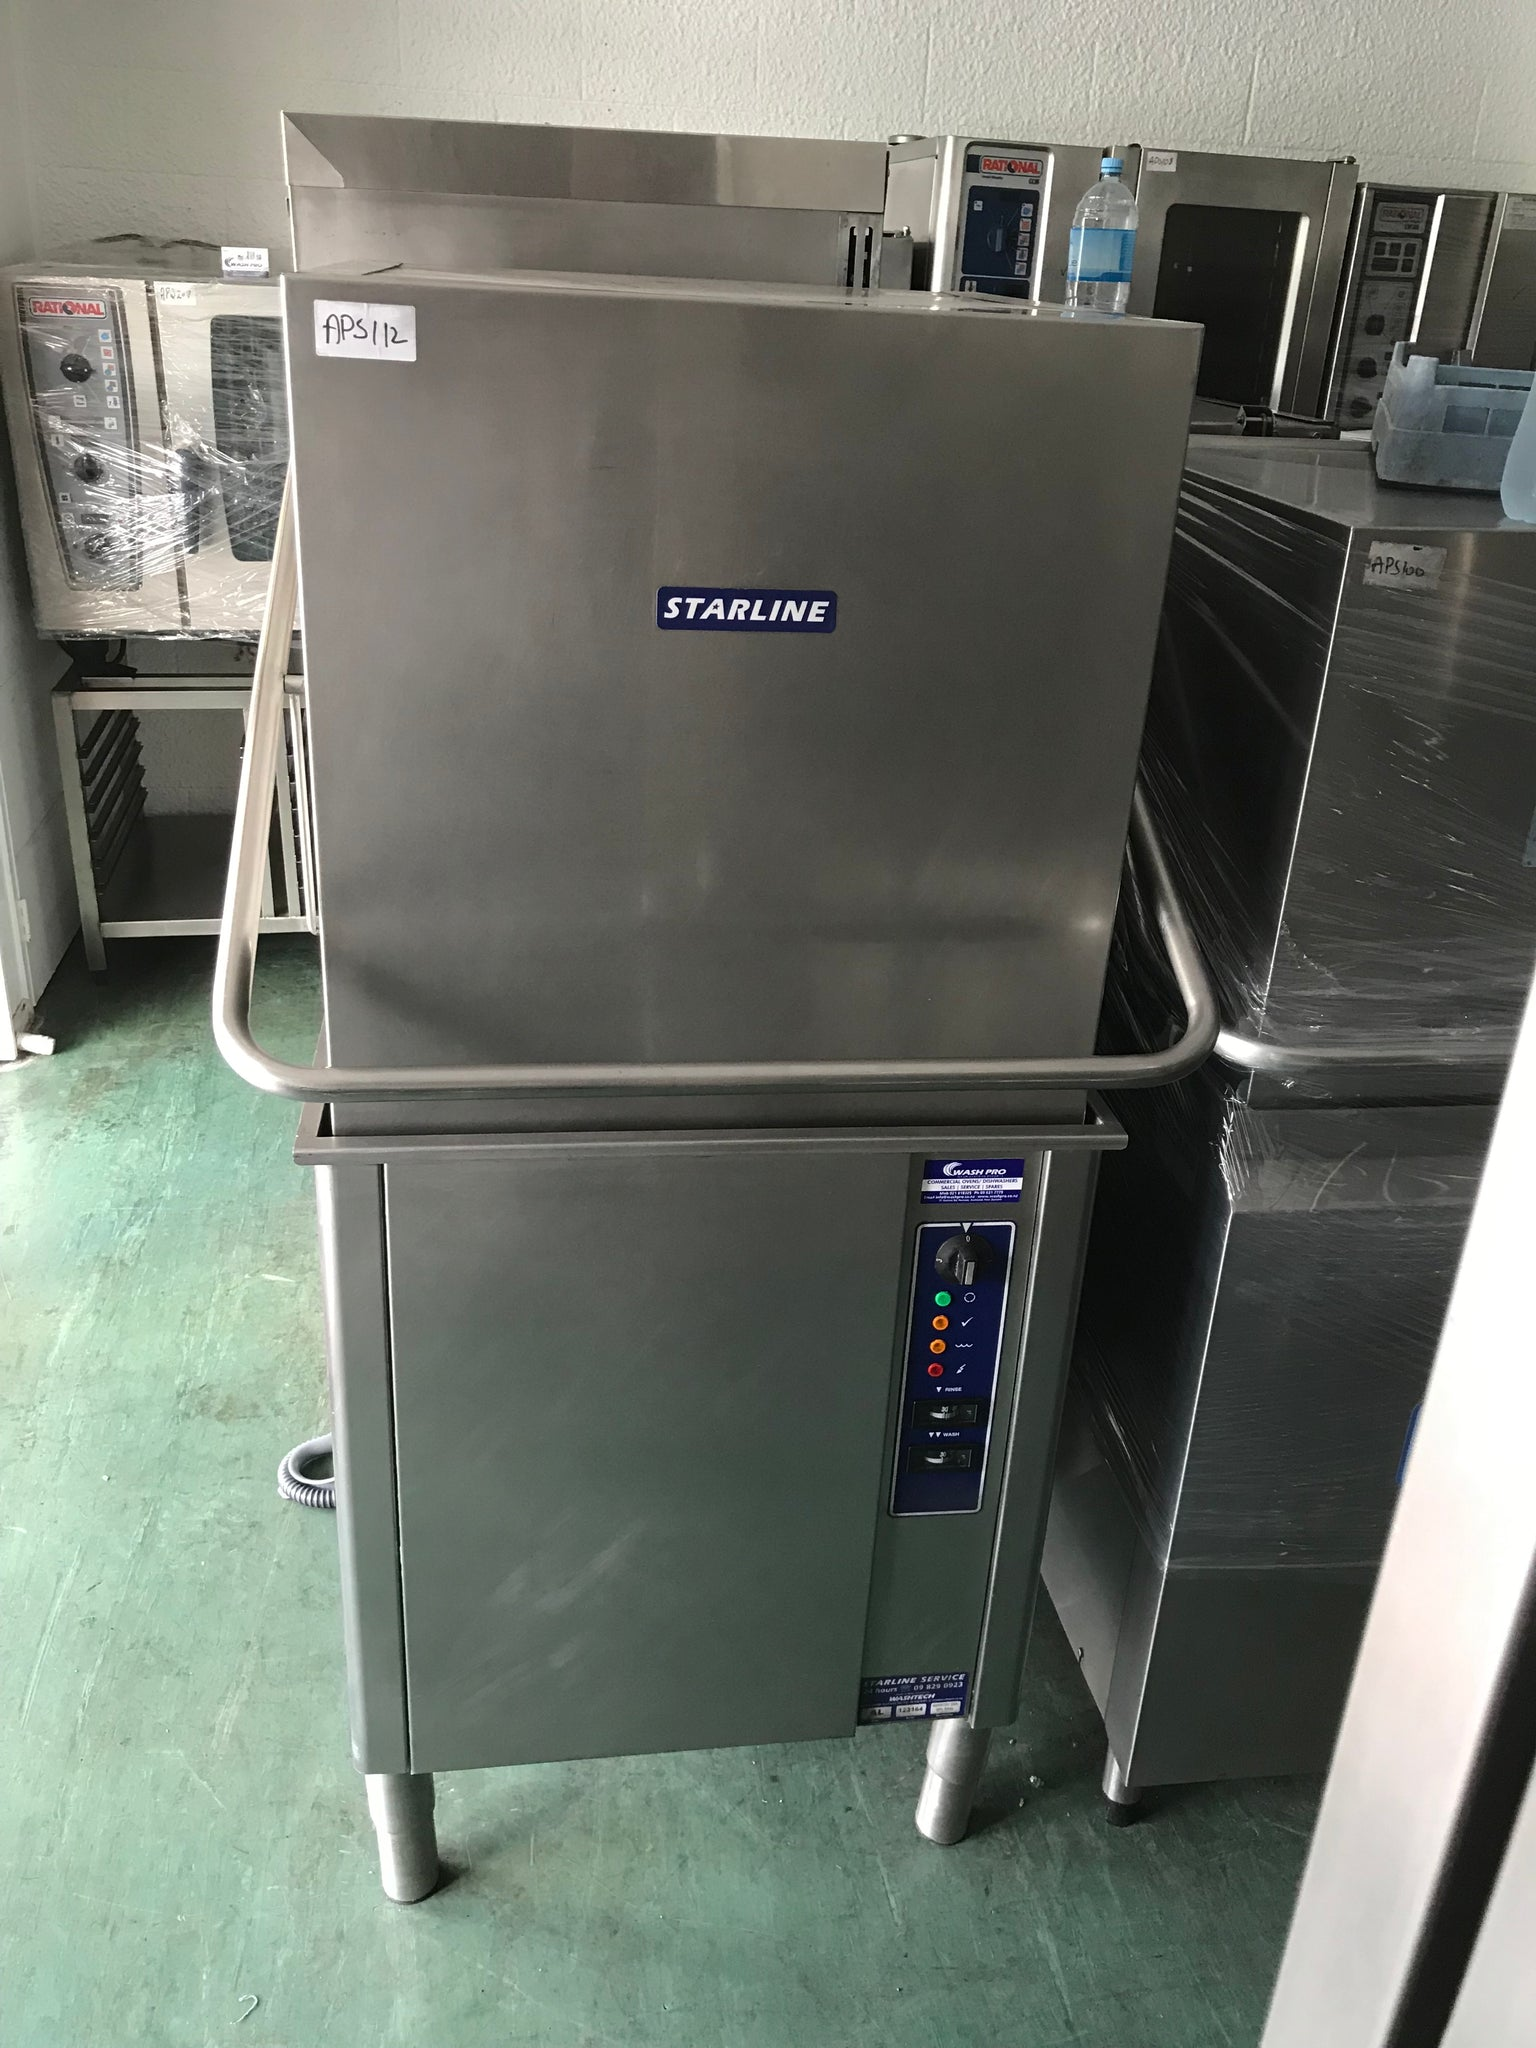 APS112 Starline AL Commercial Dishwasher in Excellent condition and warranty - Washpro